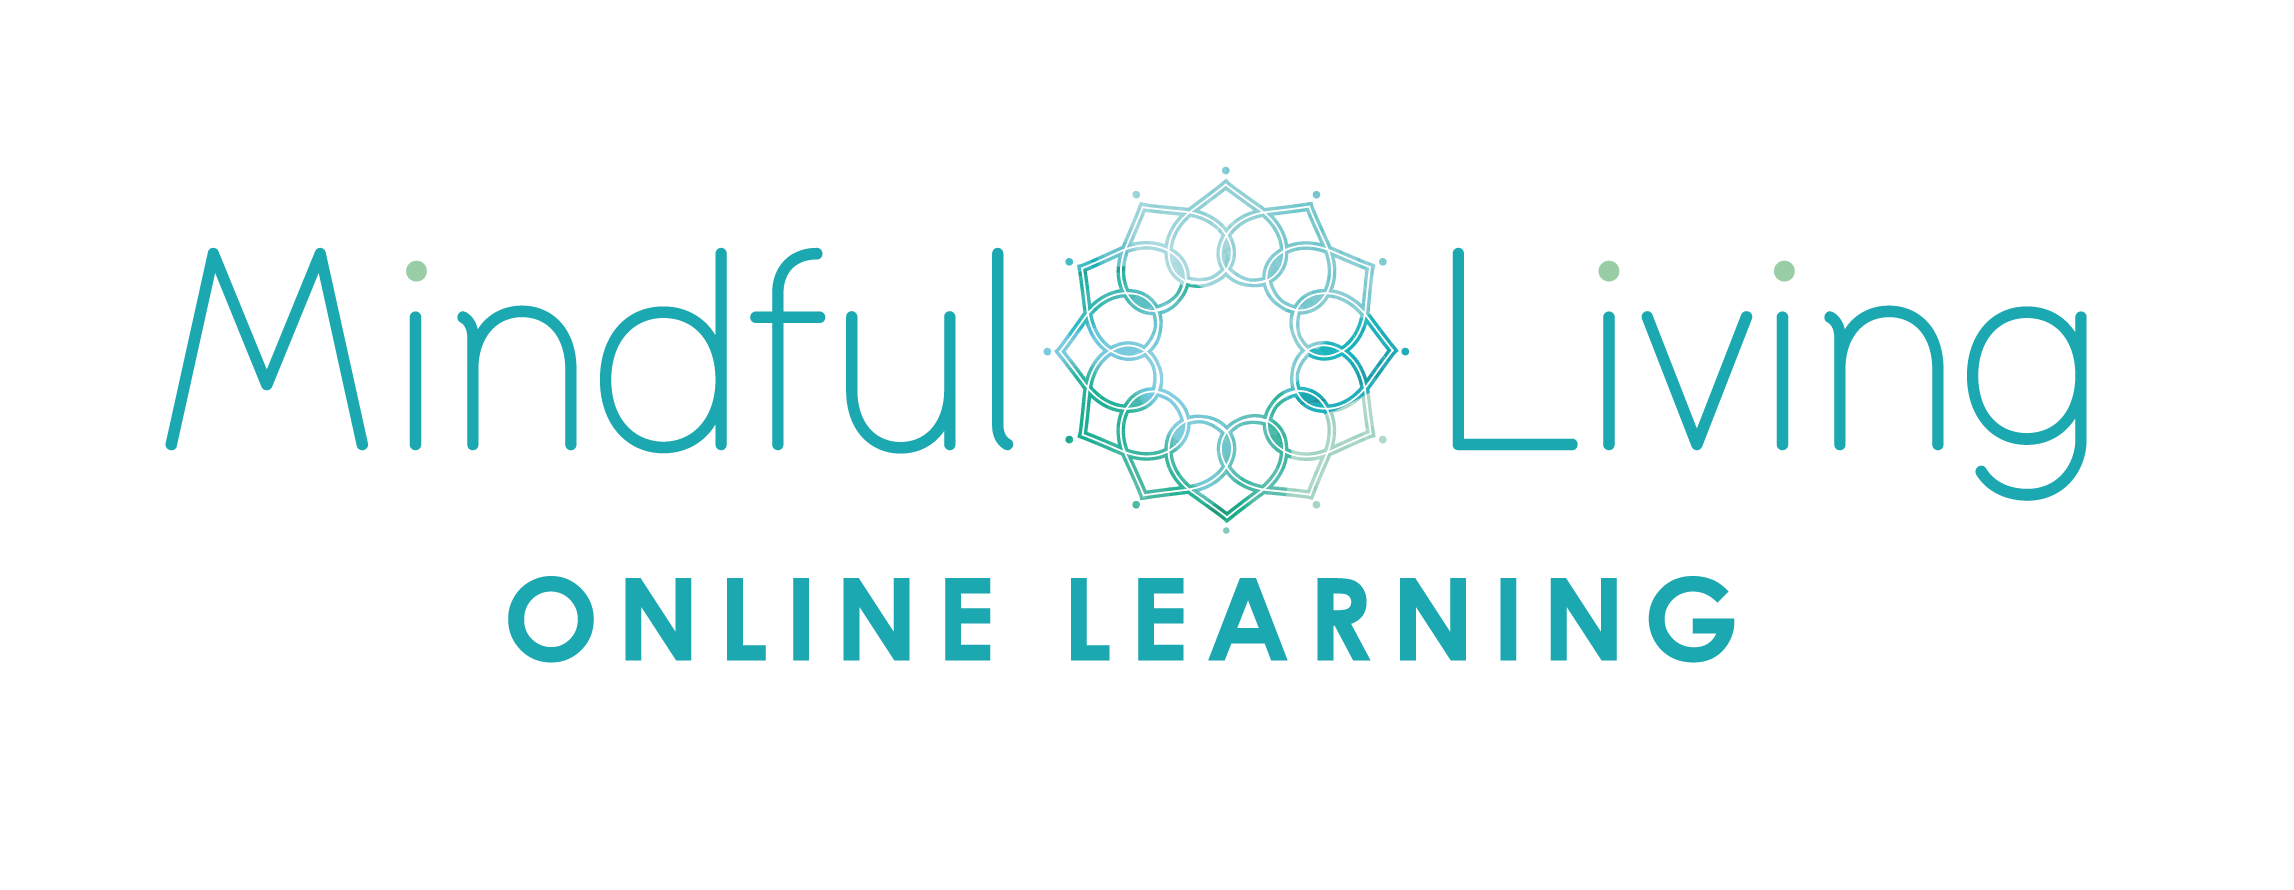 Mindful Living Online Learning